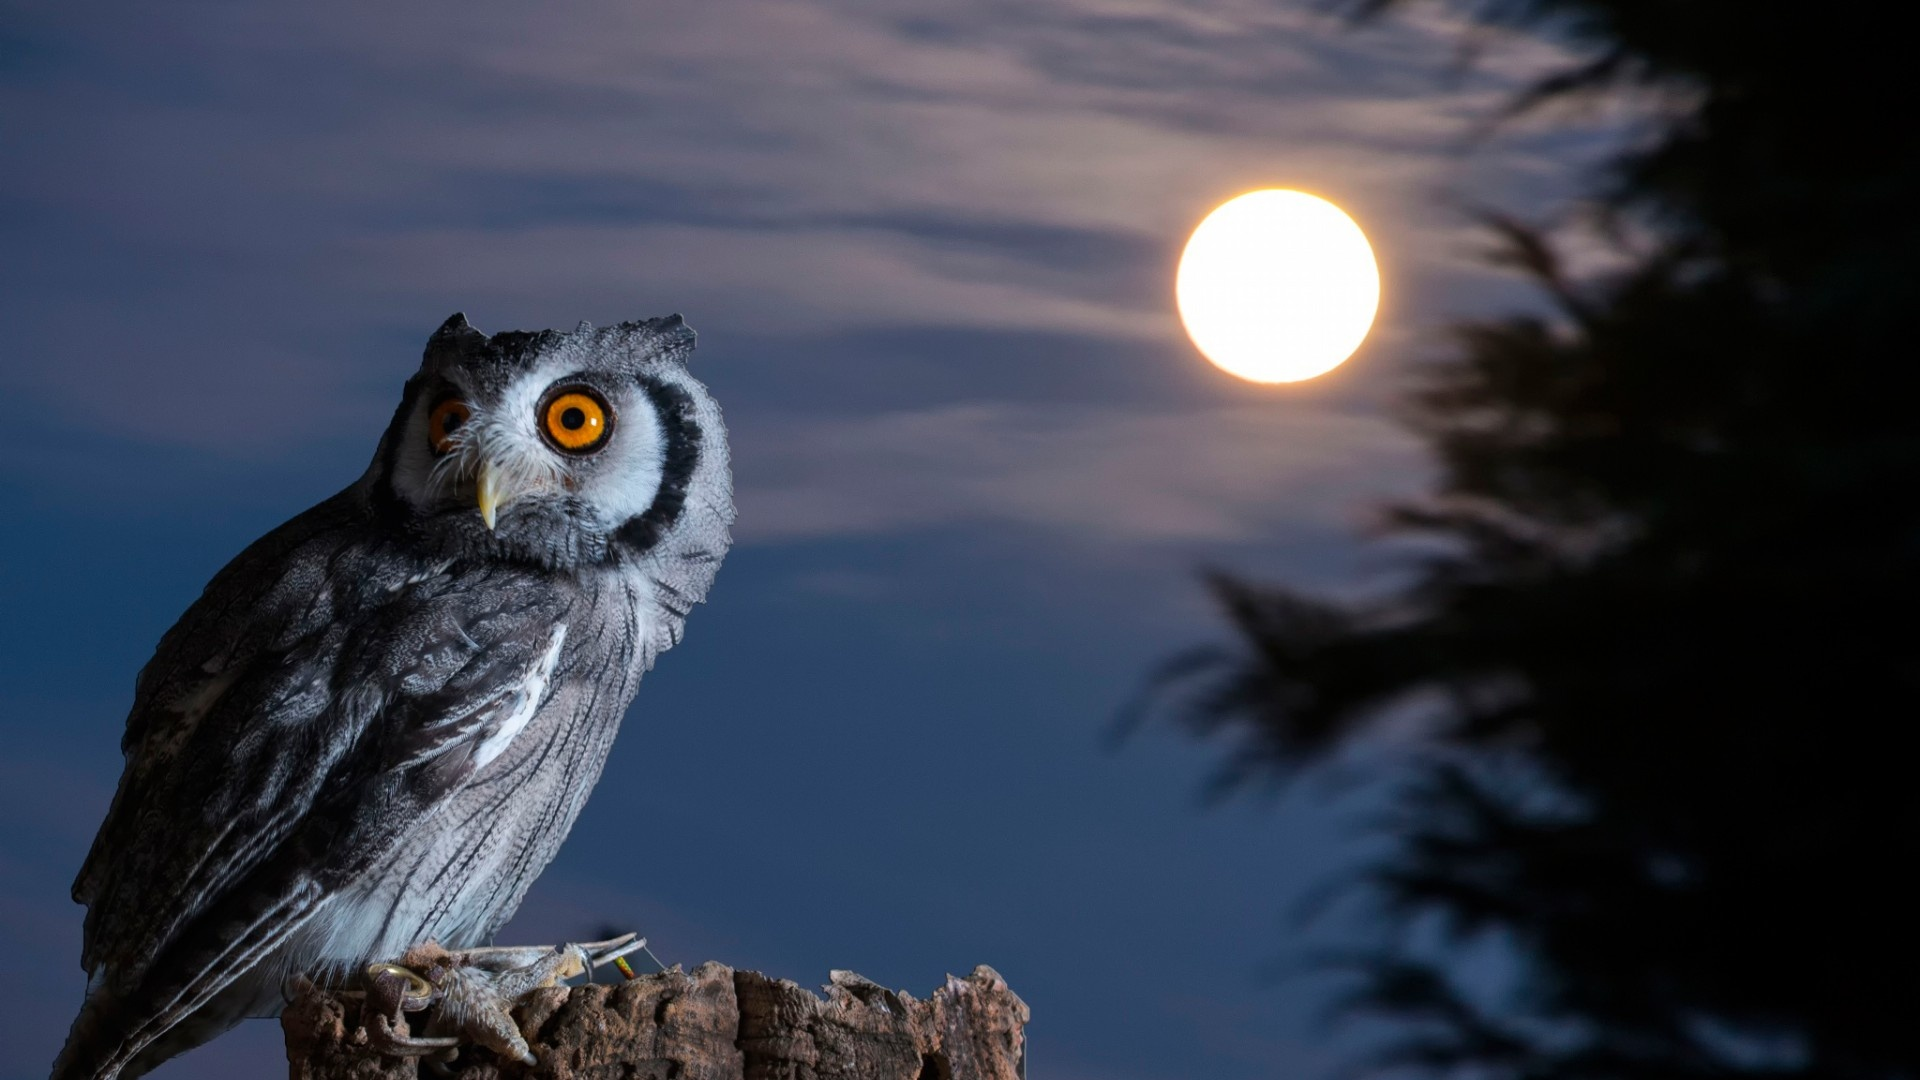 Night Owl Moon Hd Wallpaper Desktop Wallpapers 4k High Definition Windows 10 Mac Apple Colourful Images Download Wallpaper Free 1920x1080 Crossfit Norfolk